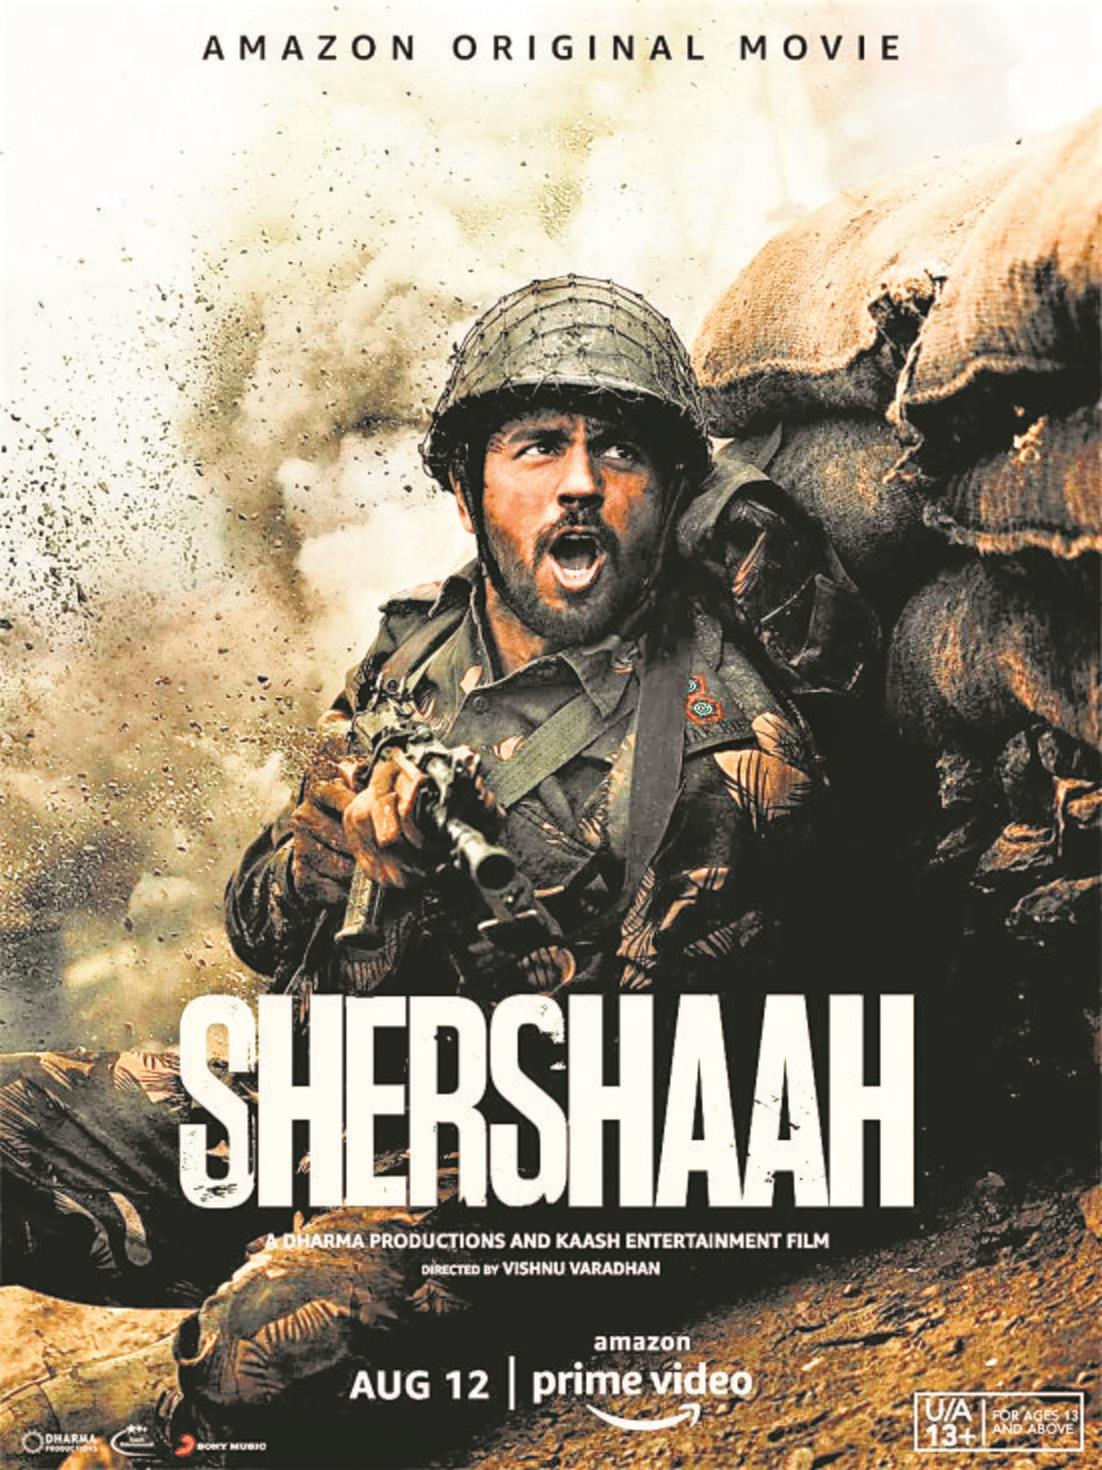 Shershaah is set to have a digital release on Amazon Prime Video